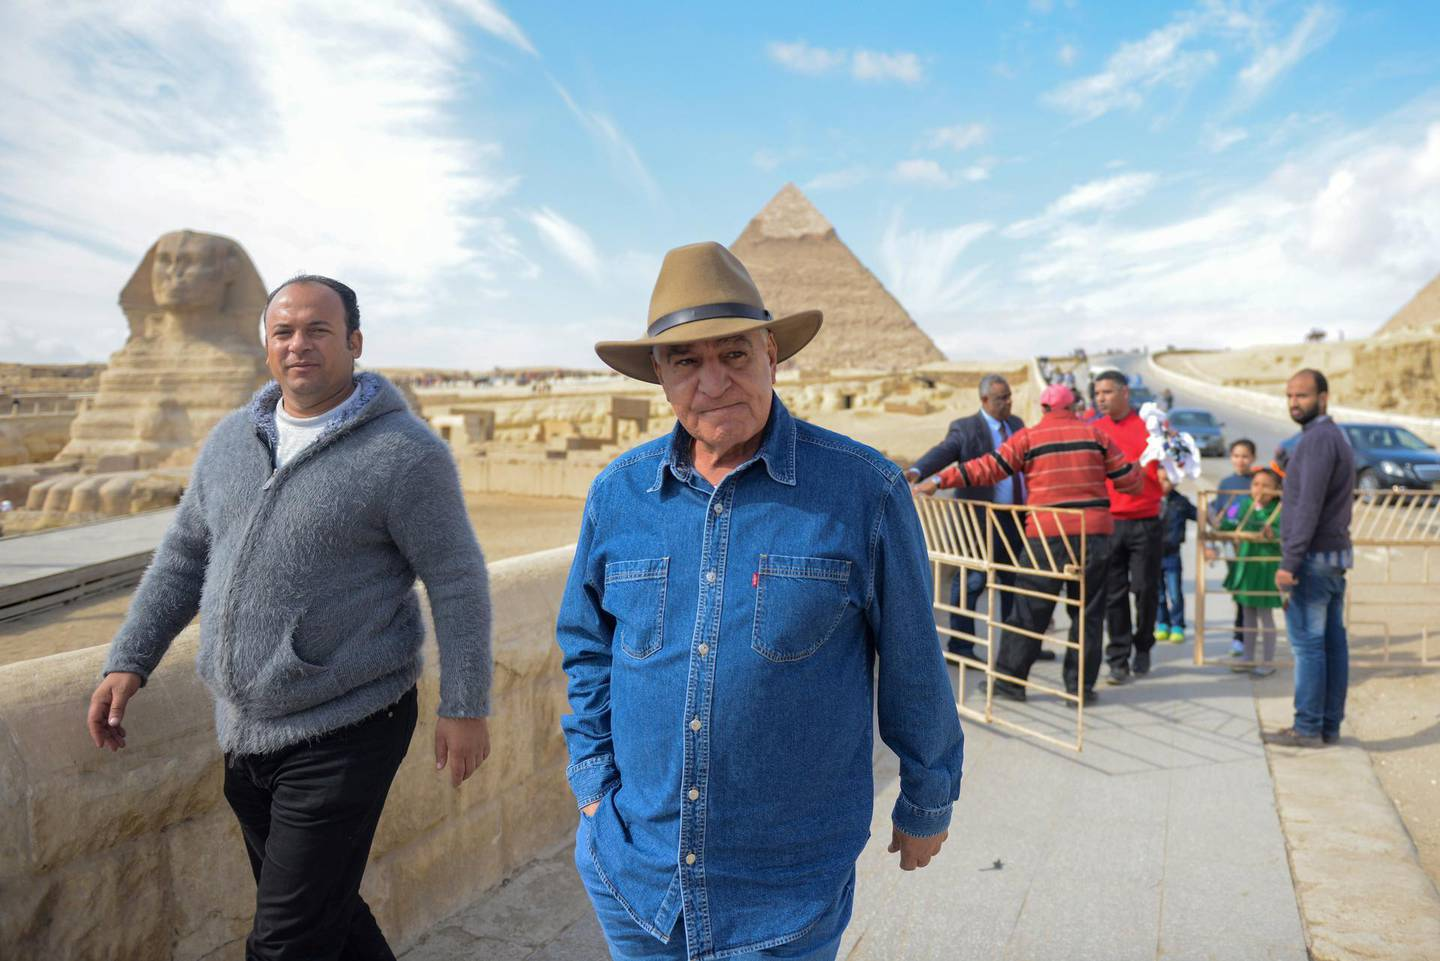 Prominent Egyptian archaeologist and former minister of antiquities, Zahi Hawas, is pictured in from of the Sphynx during a visit to the historic site of the Giza Pyramids, south of Cairo, on December 6, 2017. (Photo by MOHAMED EL-SHAHED / AFP)